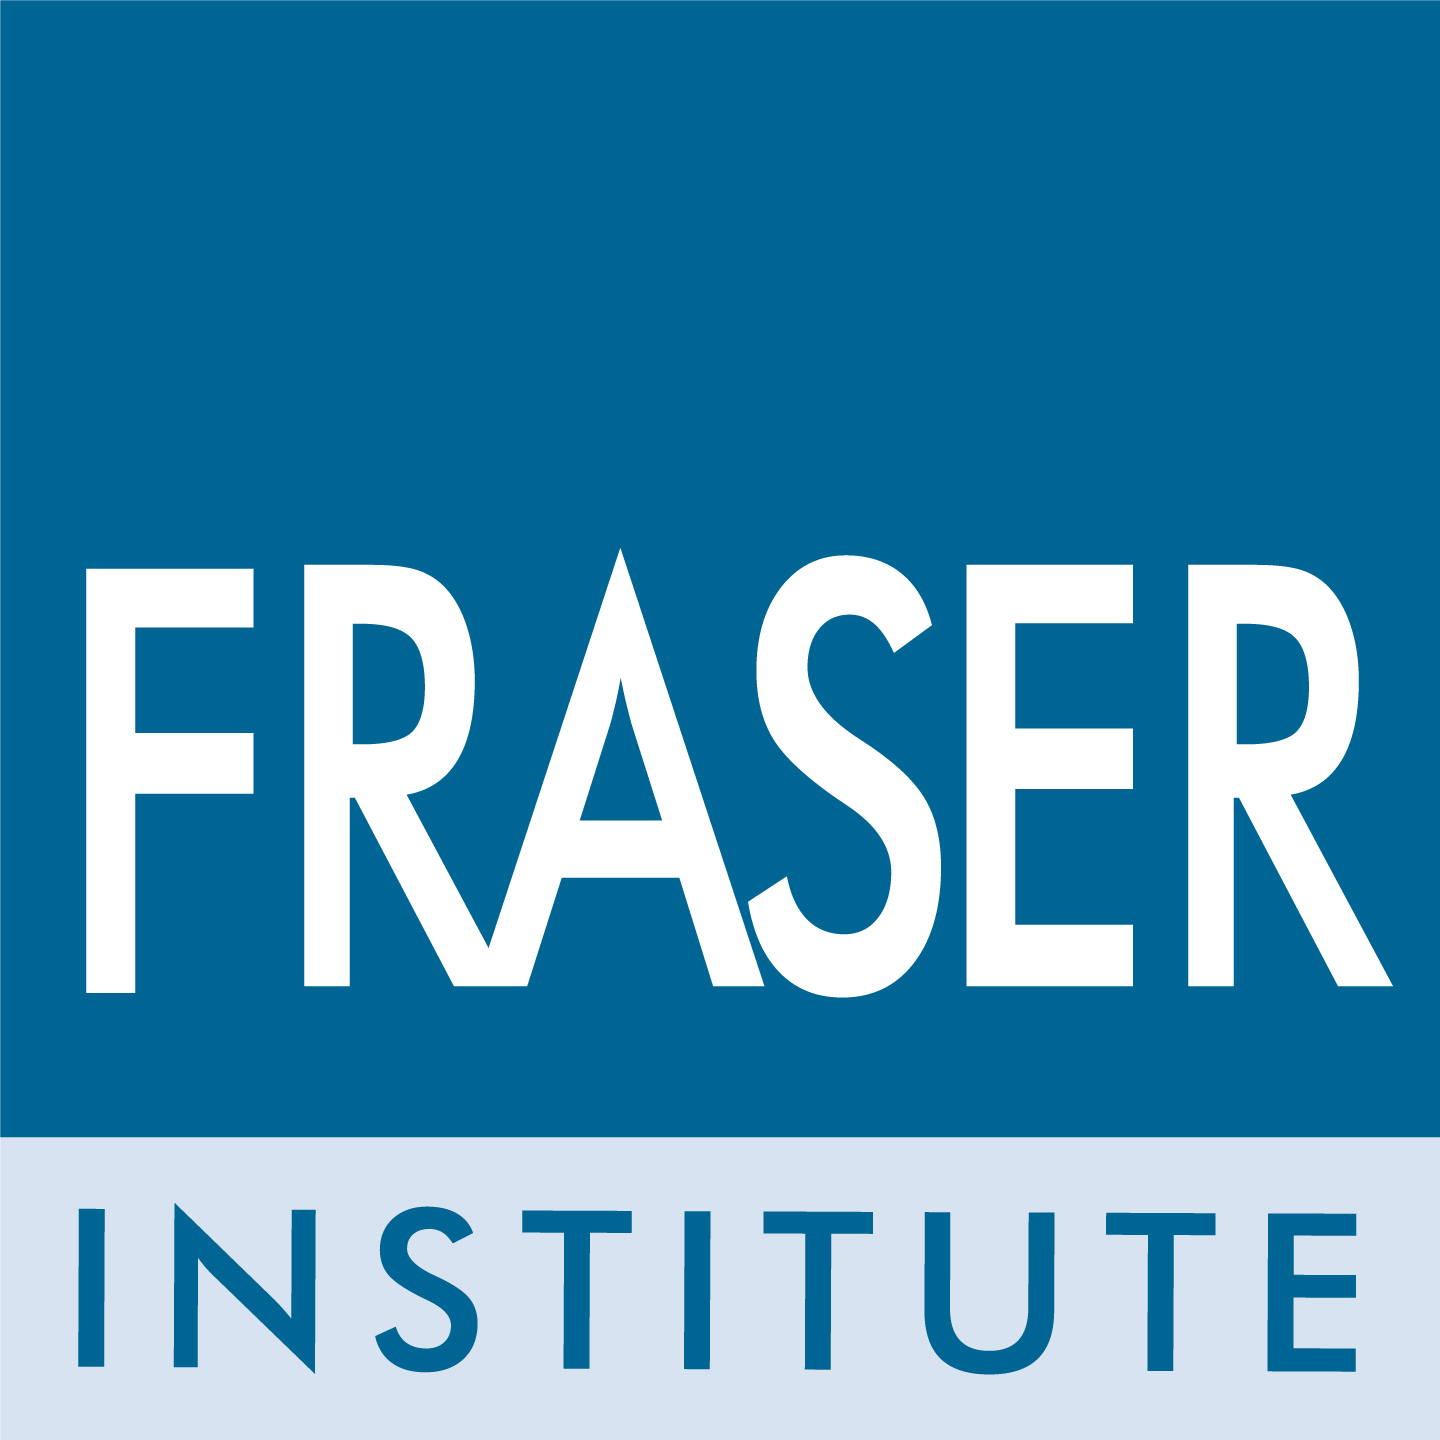 Fraser Institute News Release: Tax reform key to economic growth and four-day work week